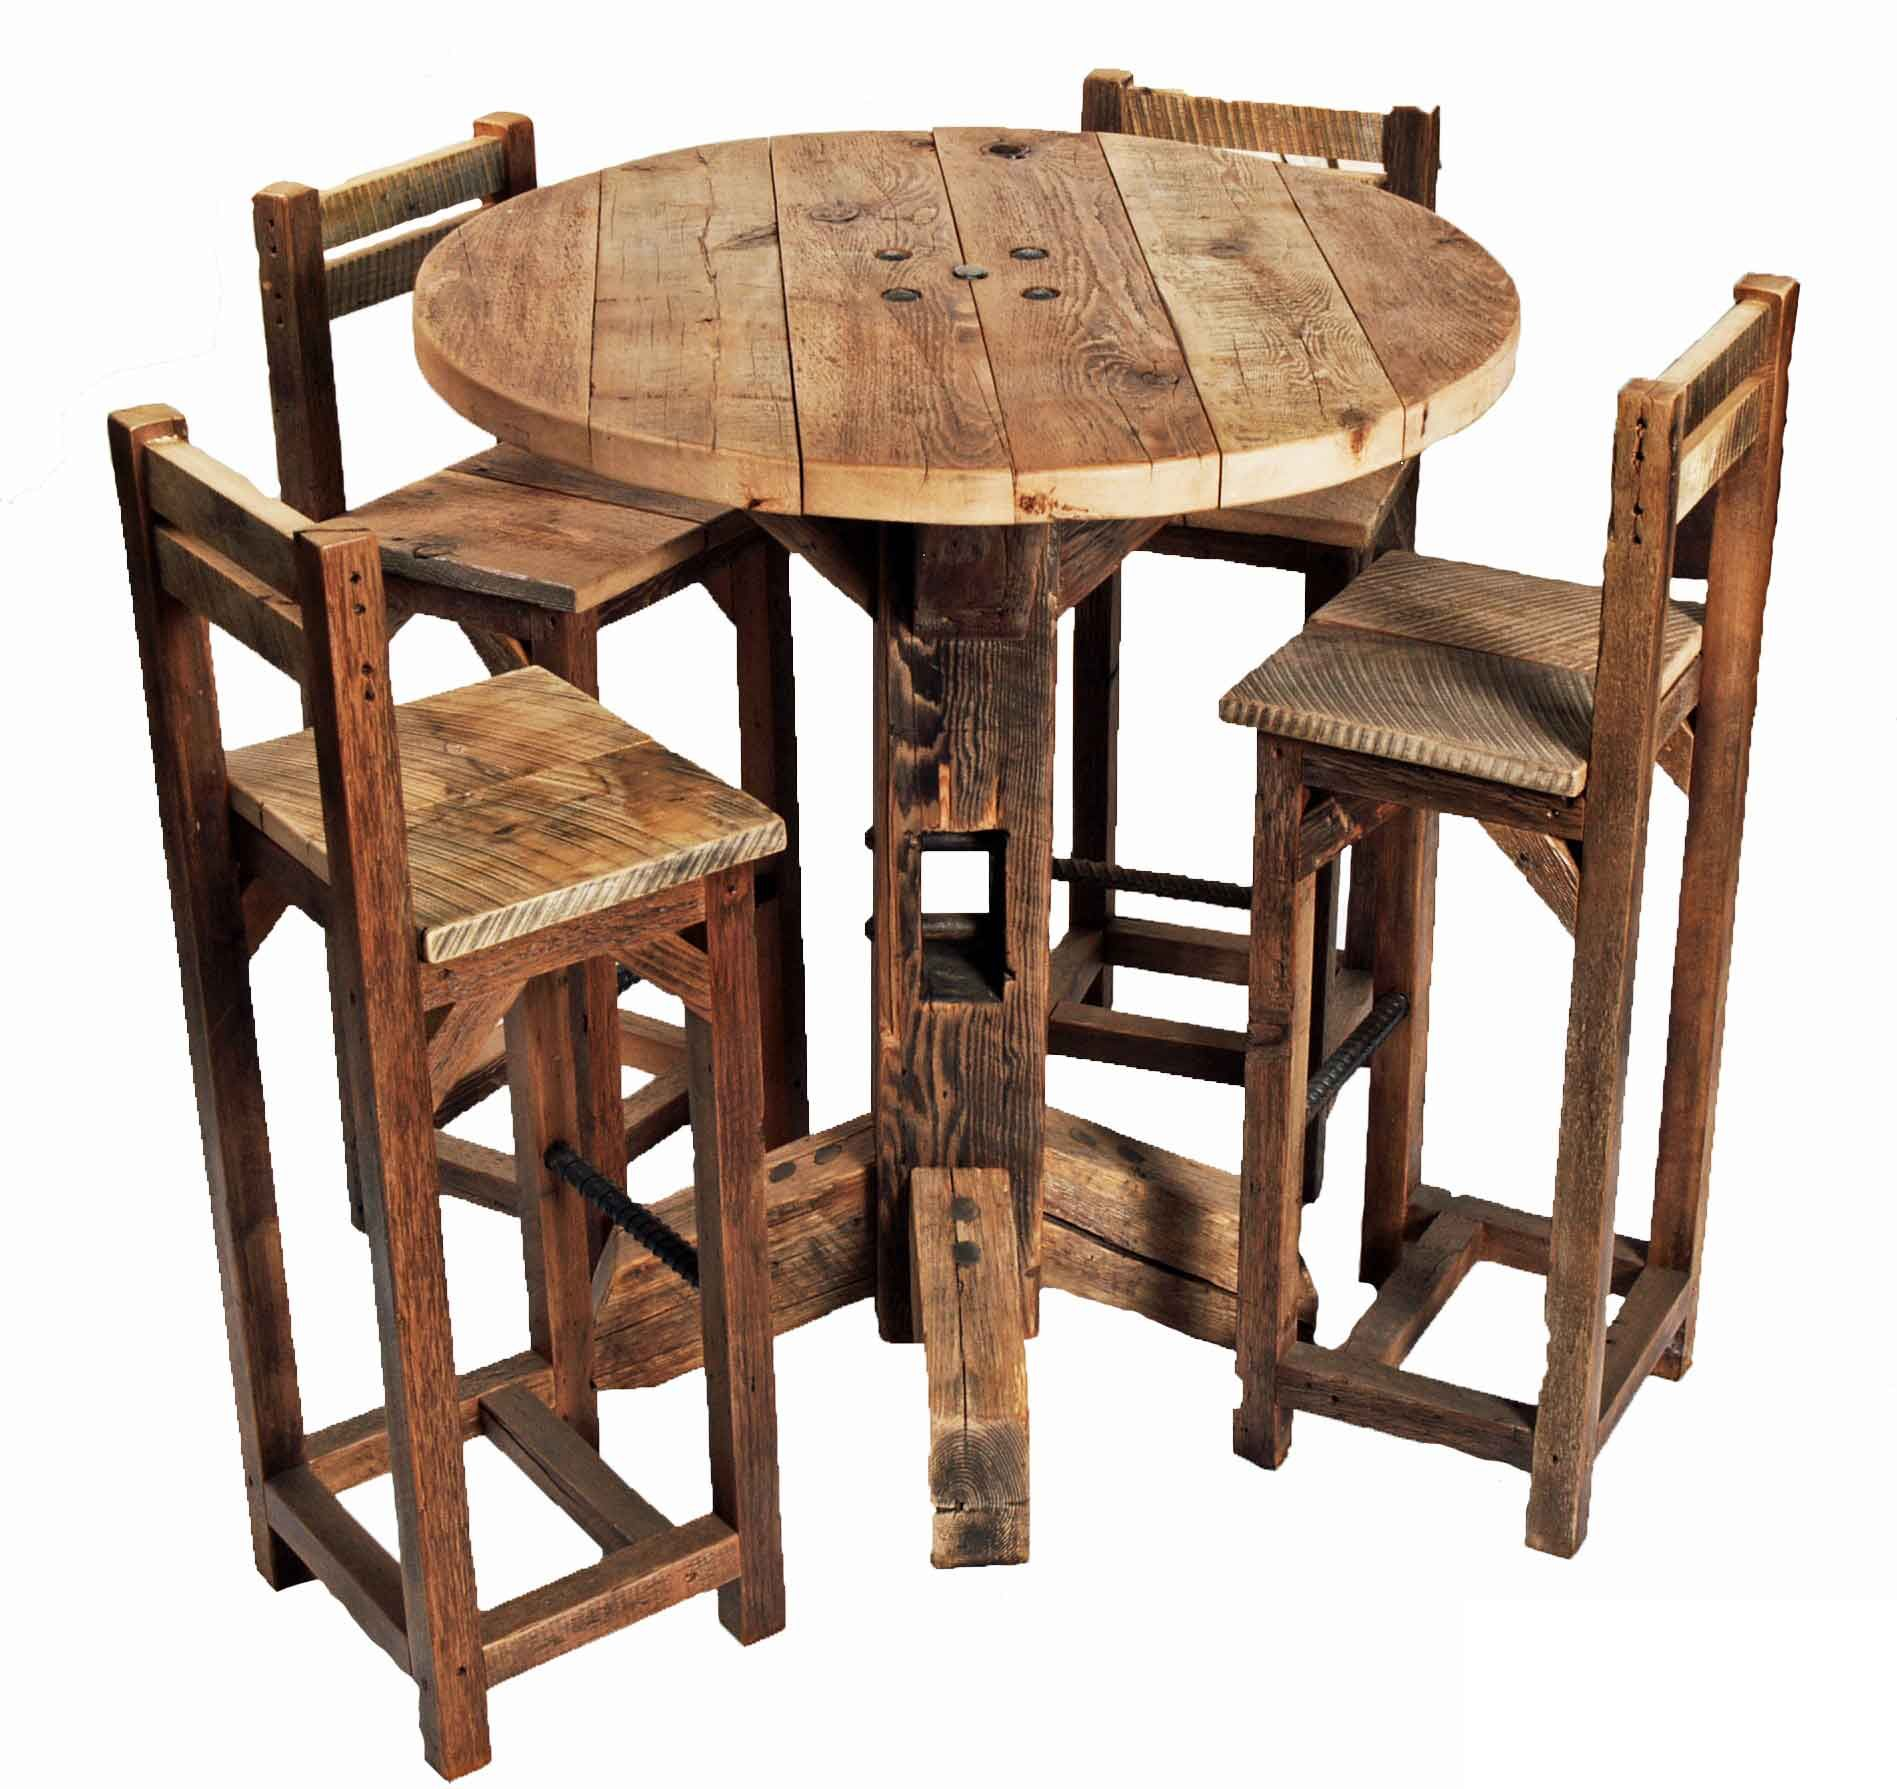 Furniture old rustic small high round top kitchen table for Small dining table with stools